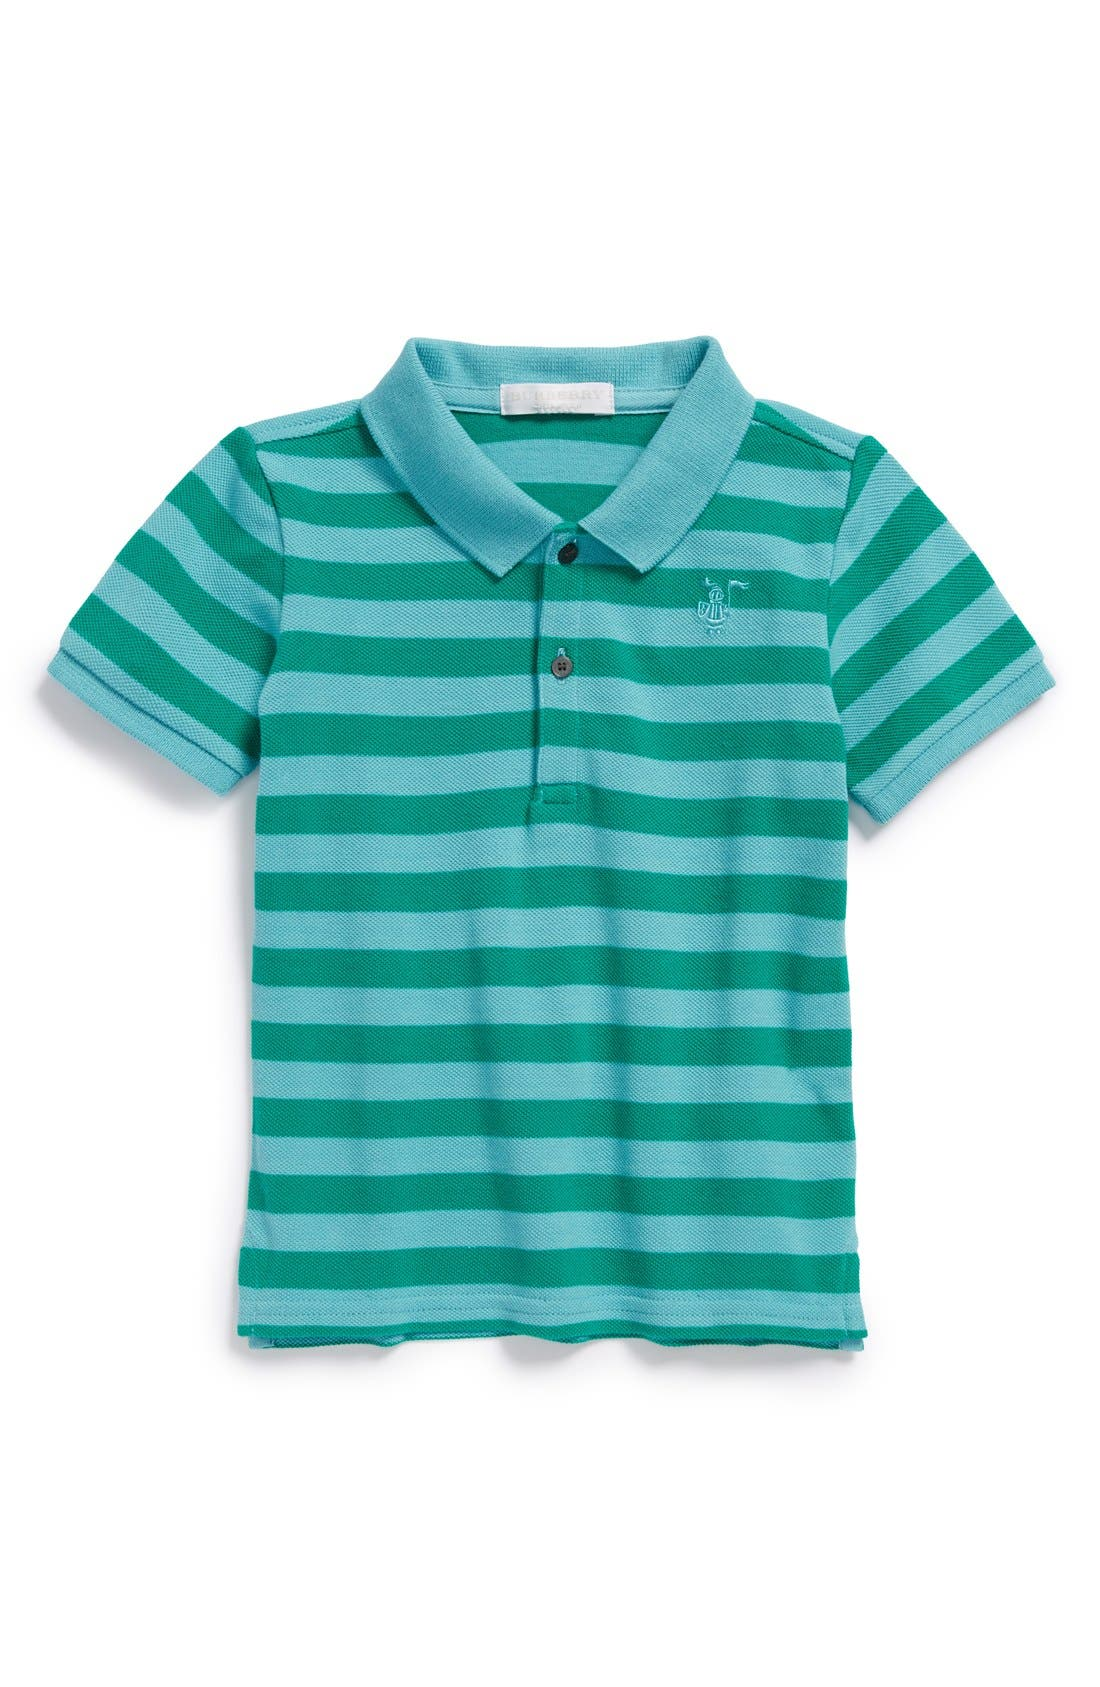 Alternate Image 1 Selected - Burberry Stripe Polo (Toddler Boys)